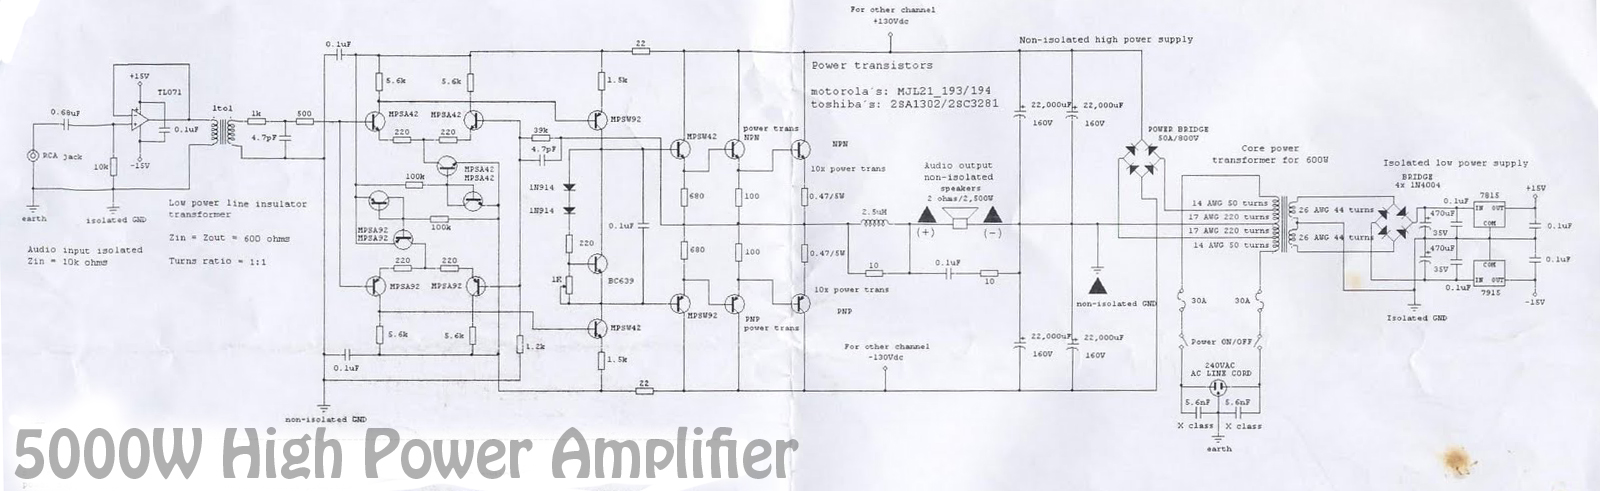 5000W High Power Amplifier Audio Circuits - Electronic Circuit